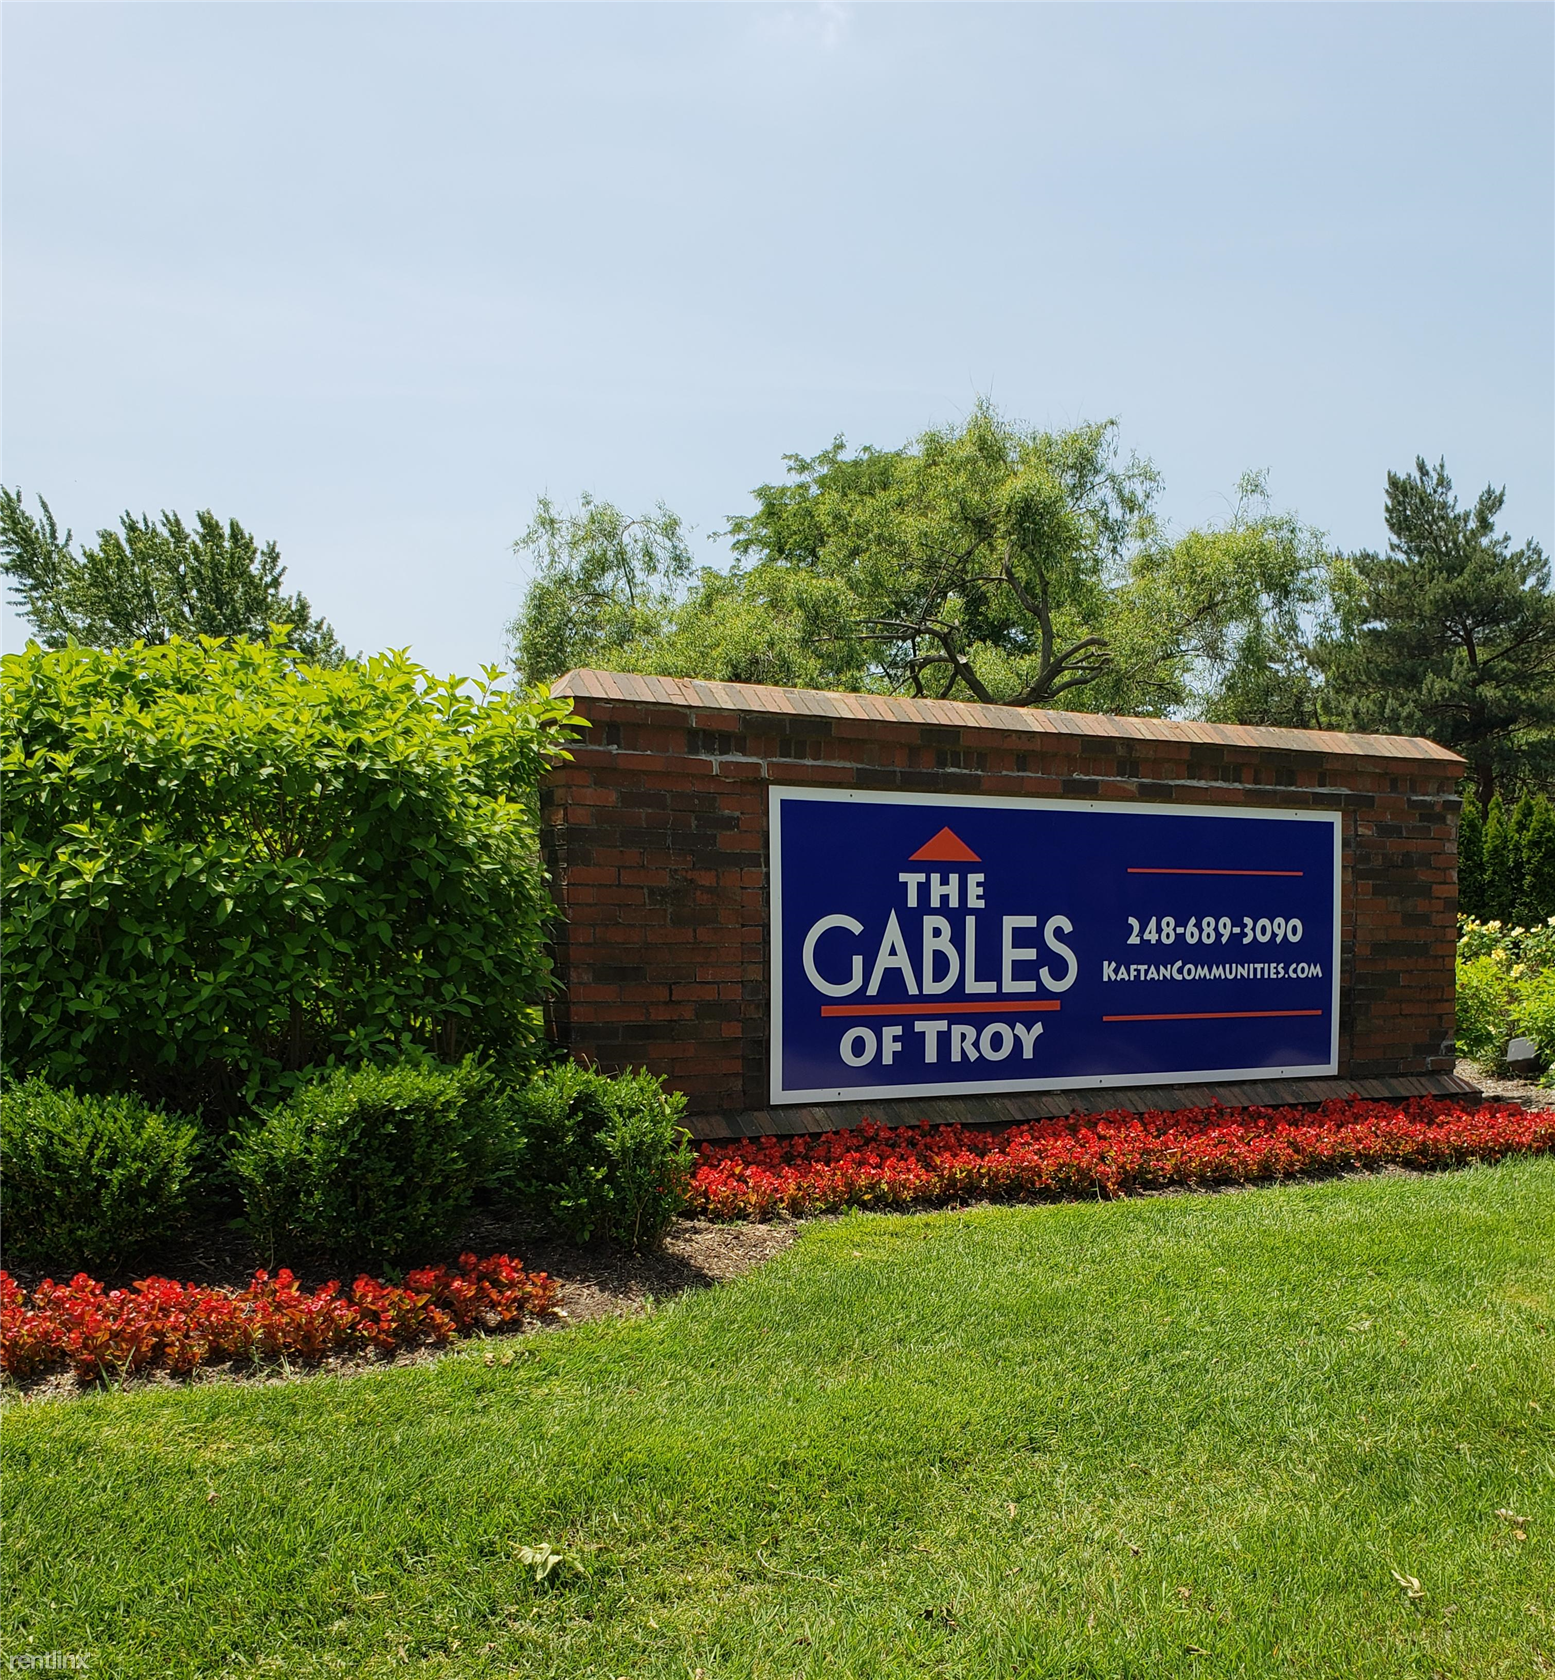 The Gables of Troy